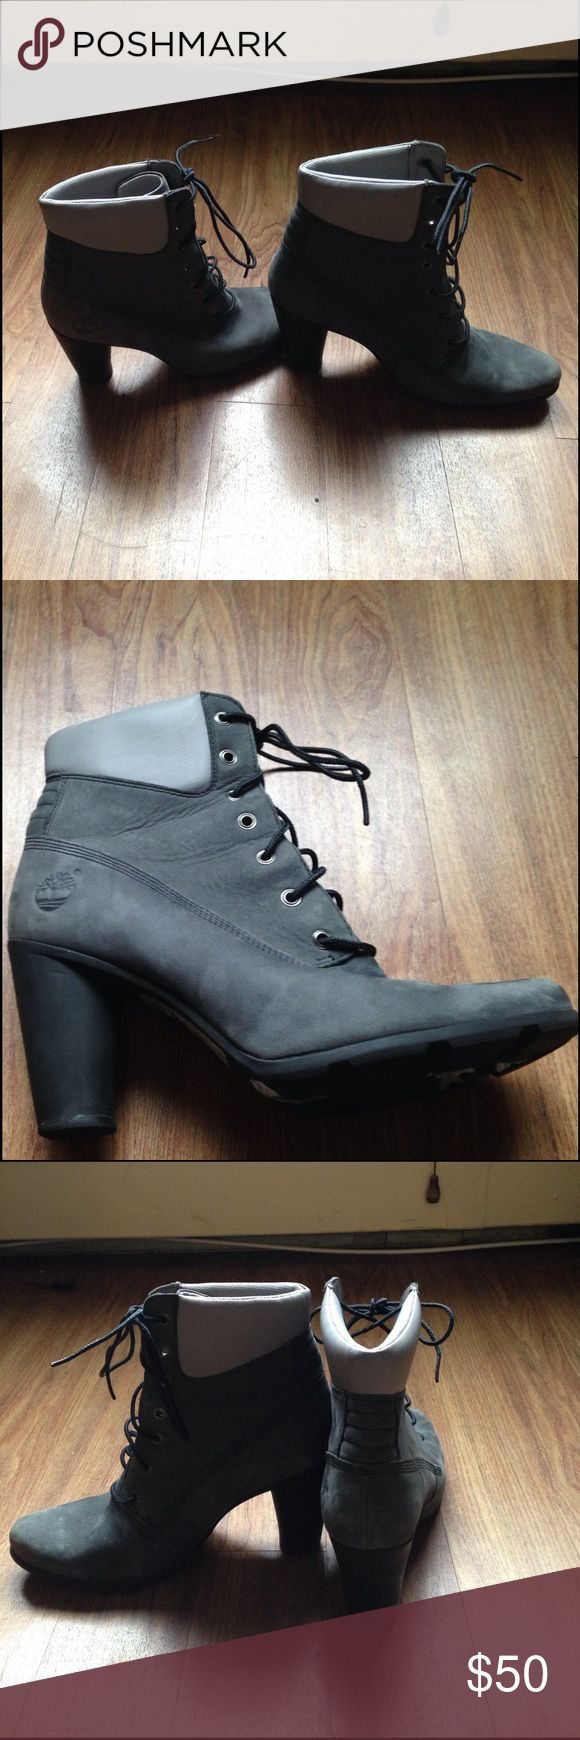 Timberland high heel boots Grey suede timberland chunk heel boots. Size 71/2 gently worn Timberland Shoes Ankle Boots & Booties